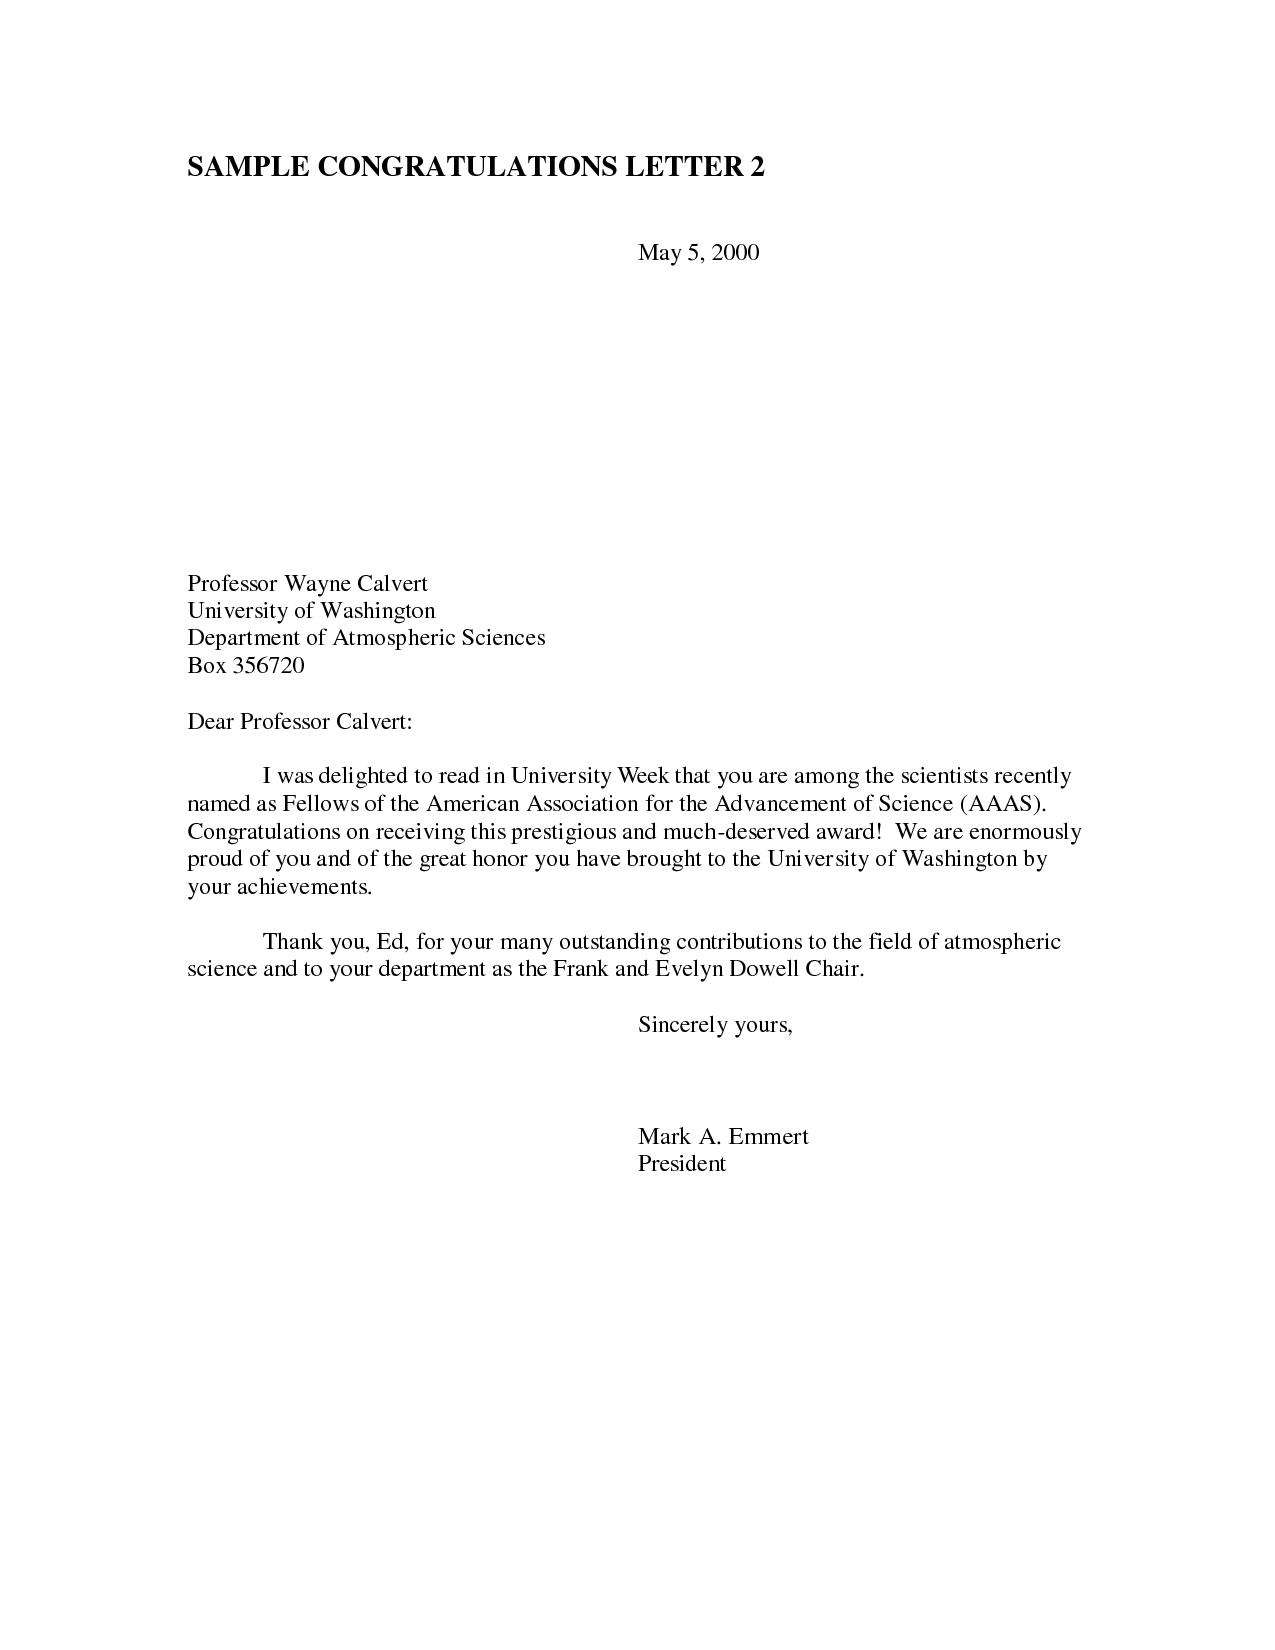 Award Congratulations Letter   Sample Congratulations Letter For Winning An  Award.  Congratulations Award Template